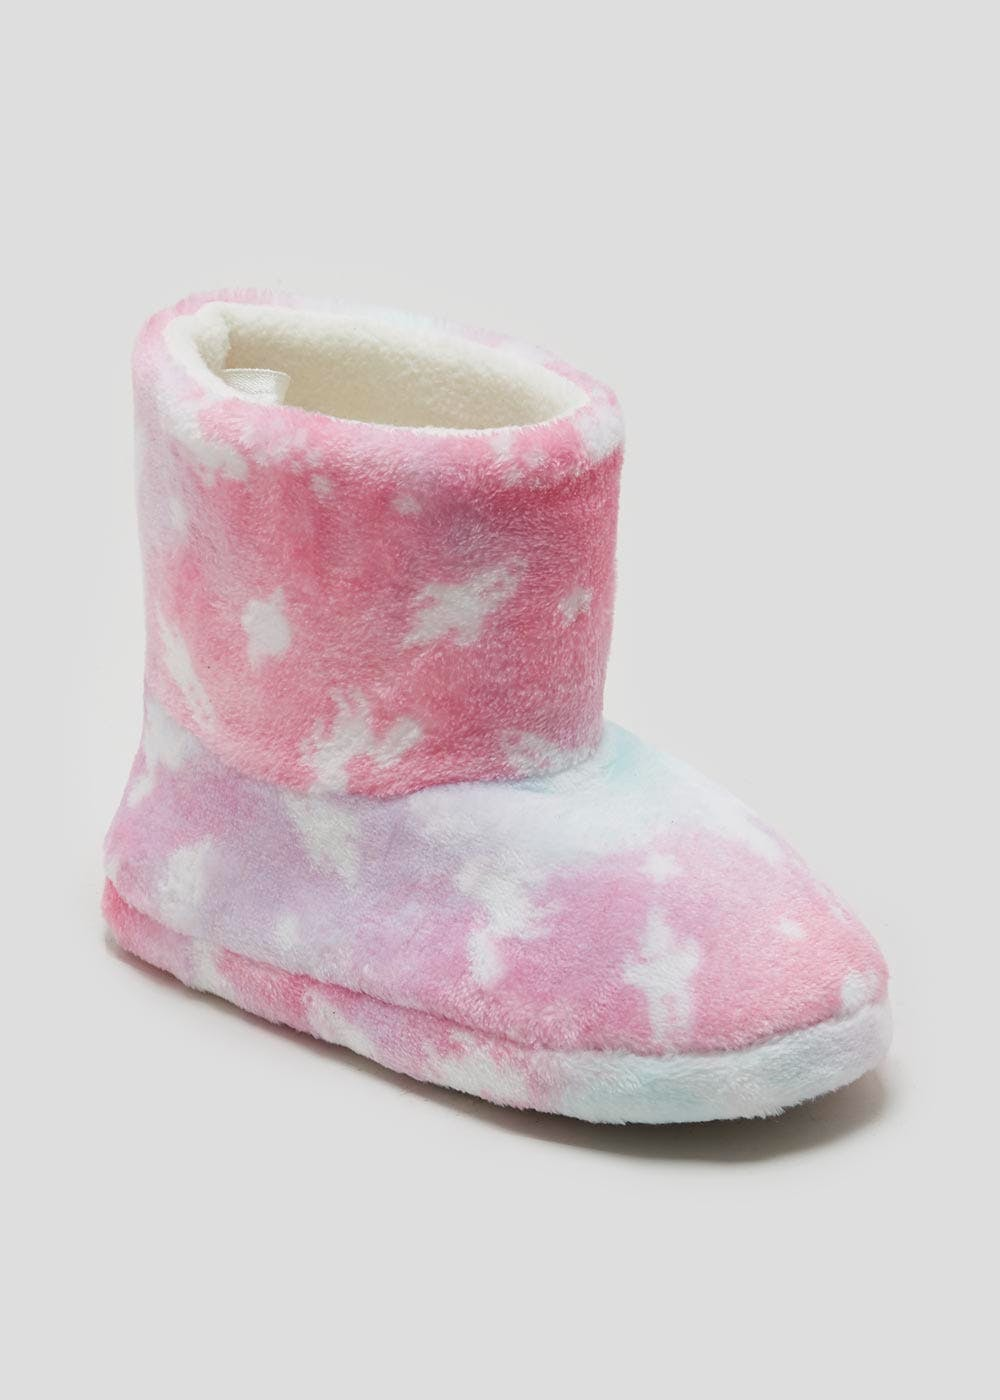 ed6ced8b5 Girls Unicorn Slipper Boots (Younger 10-Older 5) – Pink – Matalan